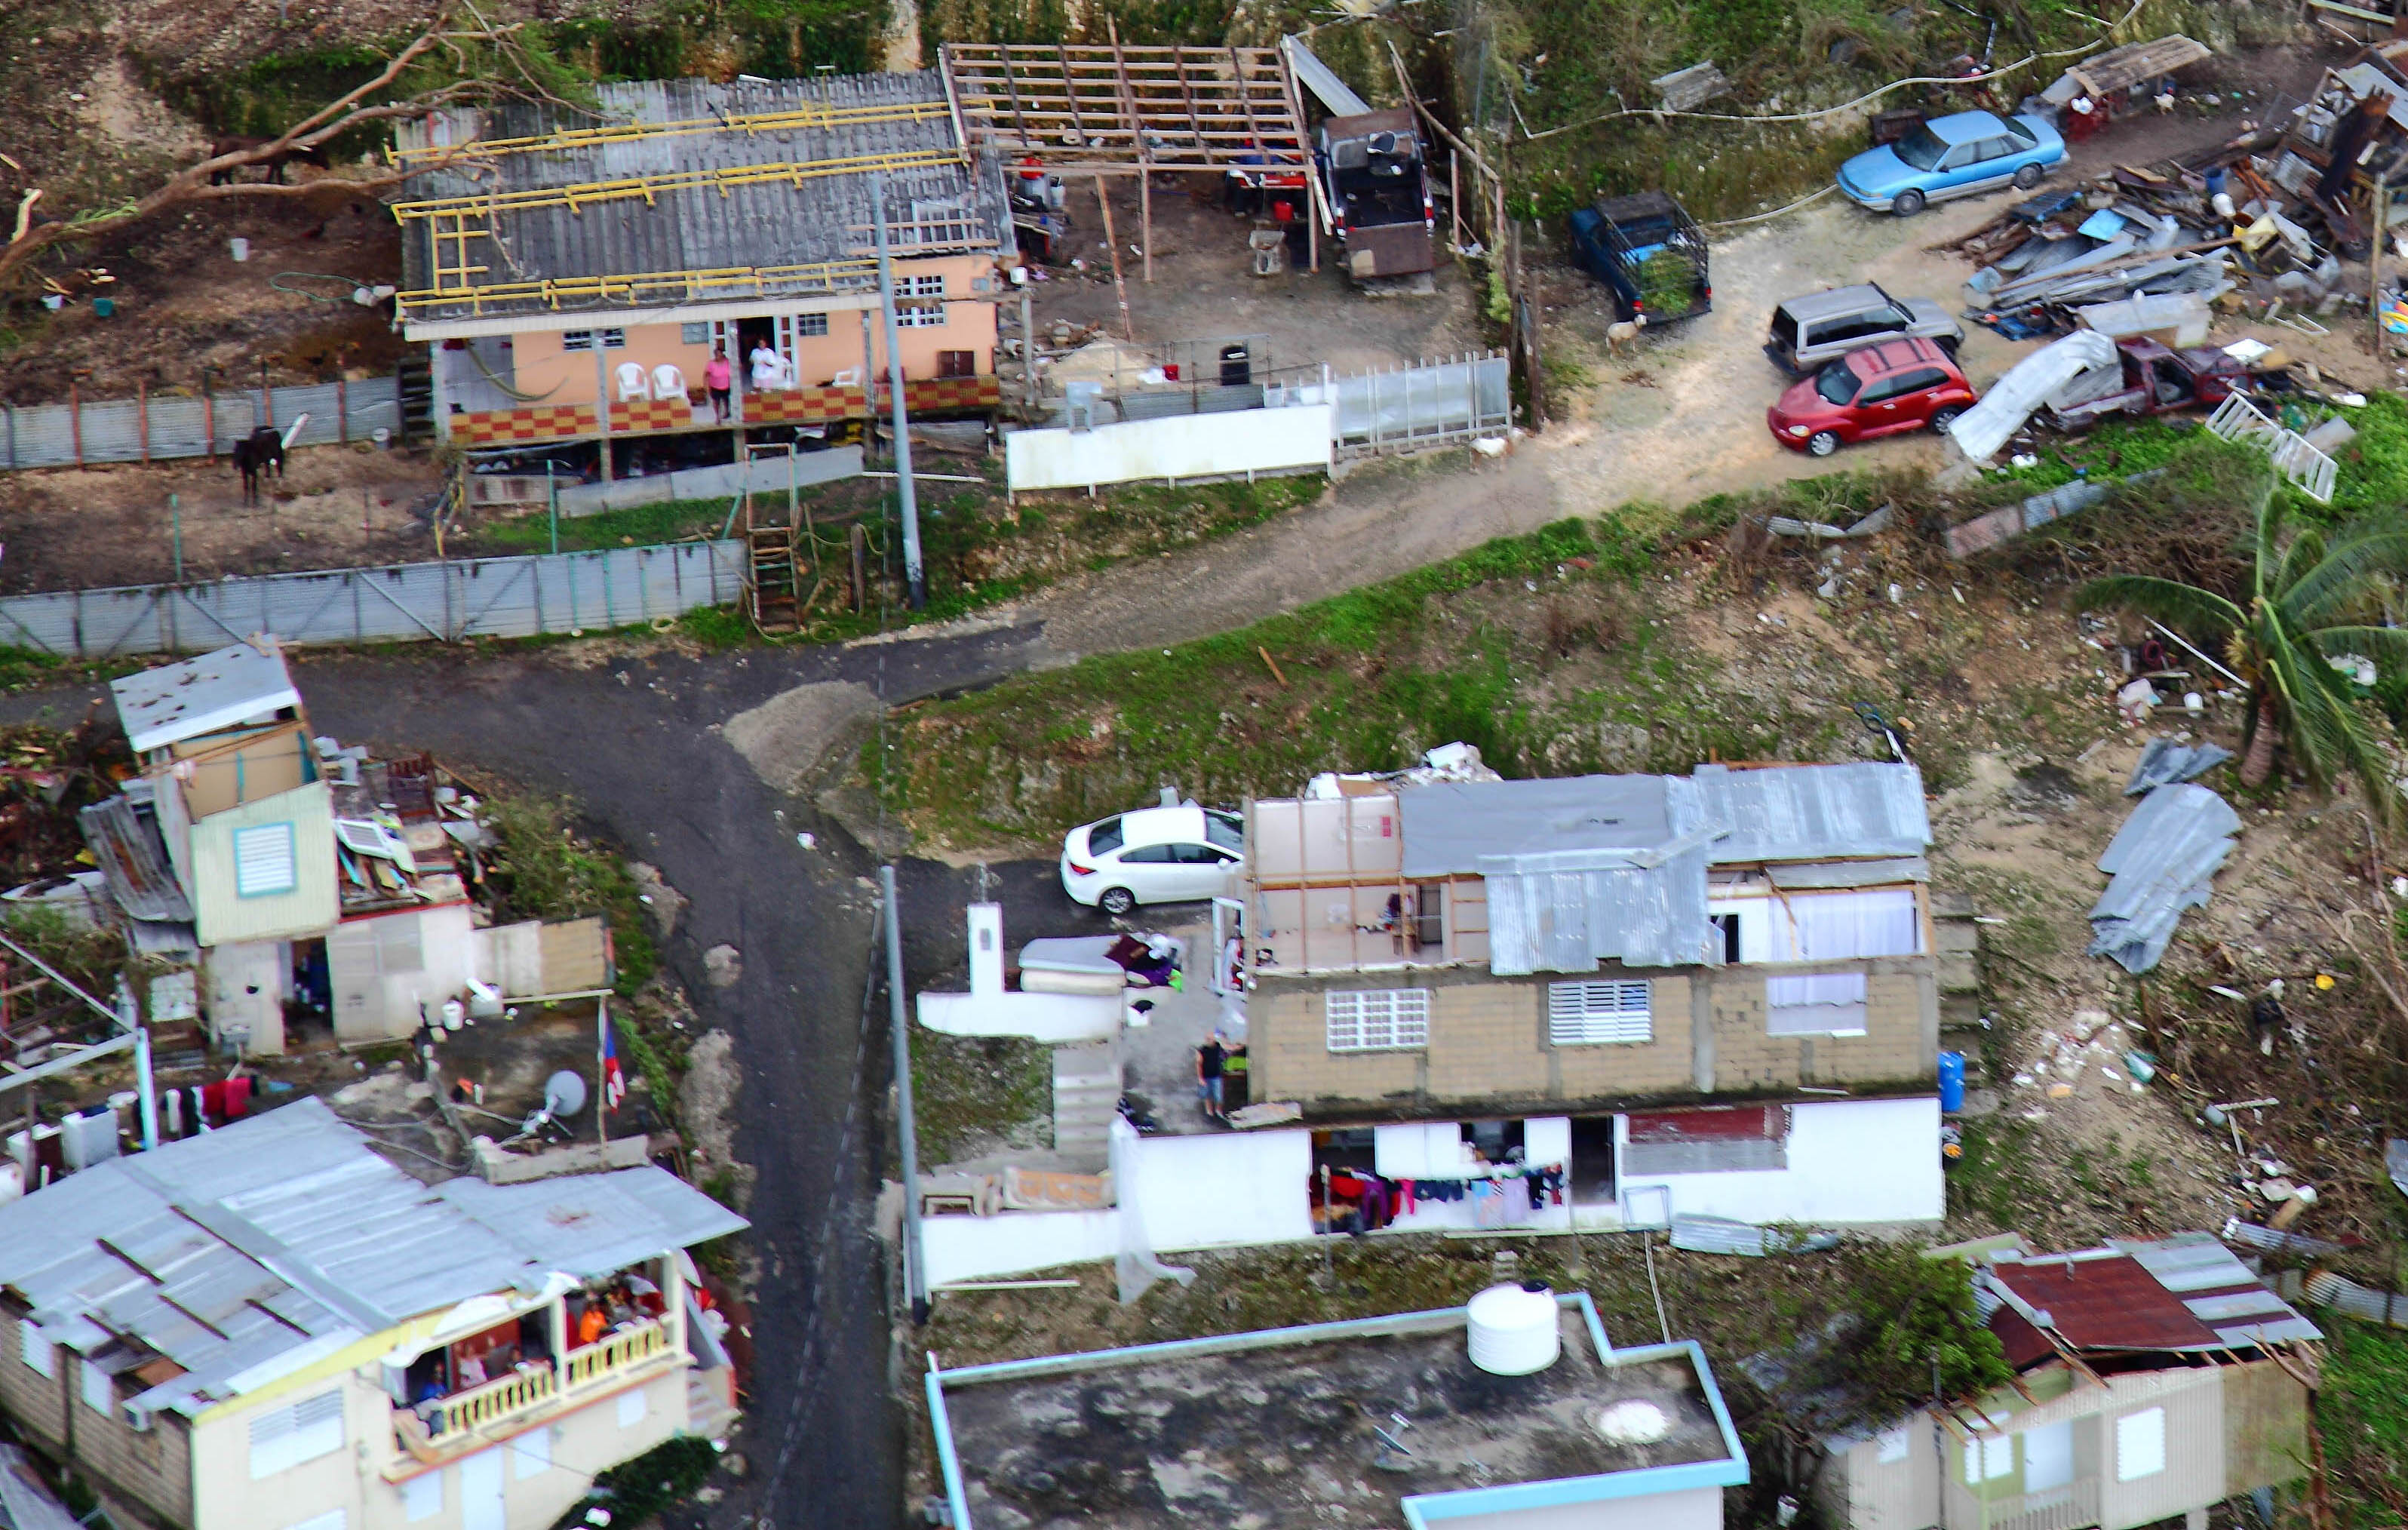 Aerial photo of hurricane damage in Puerto Rico in 2017